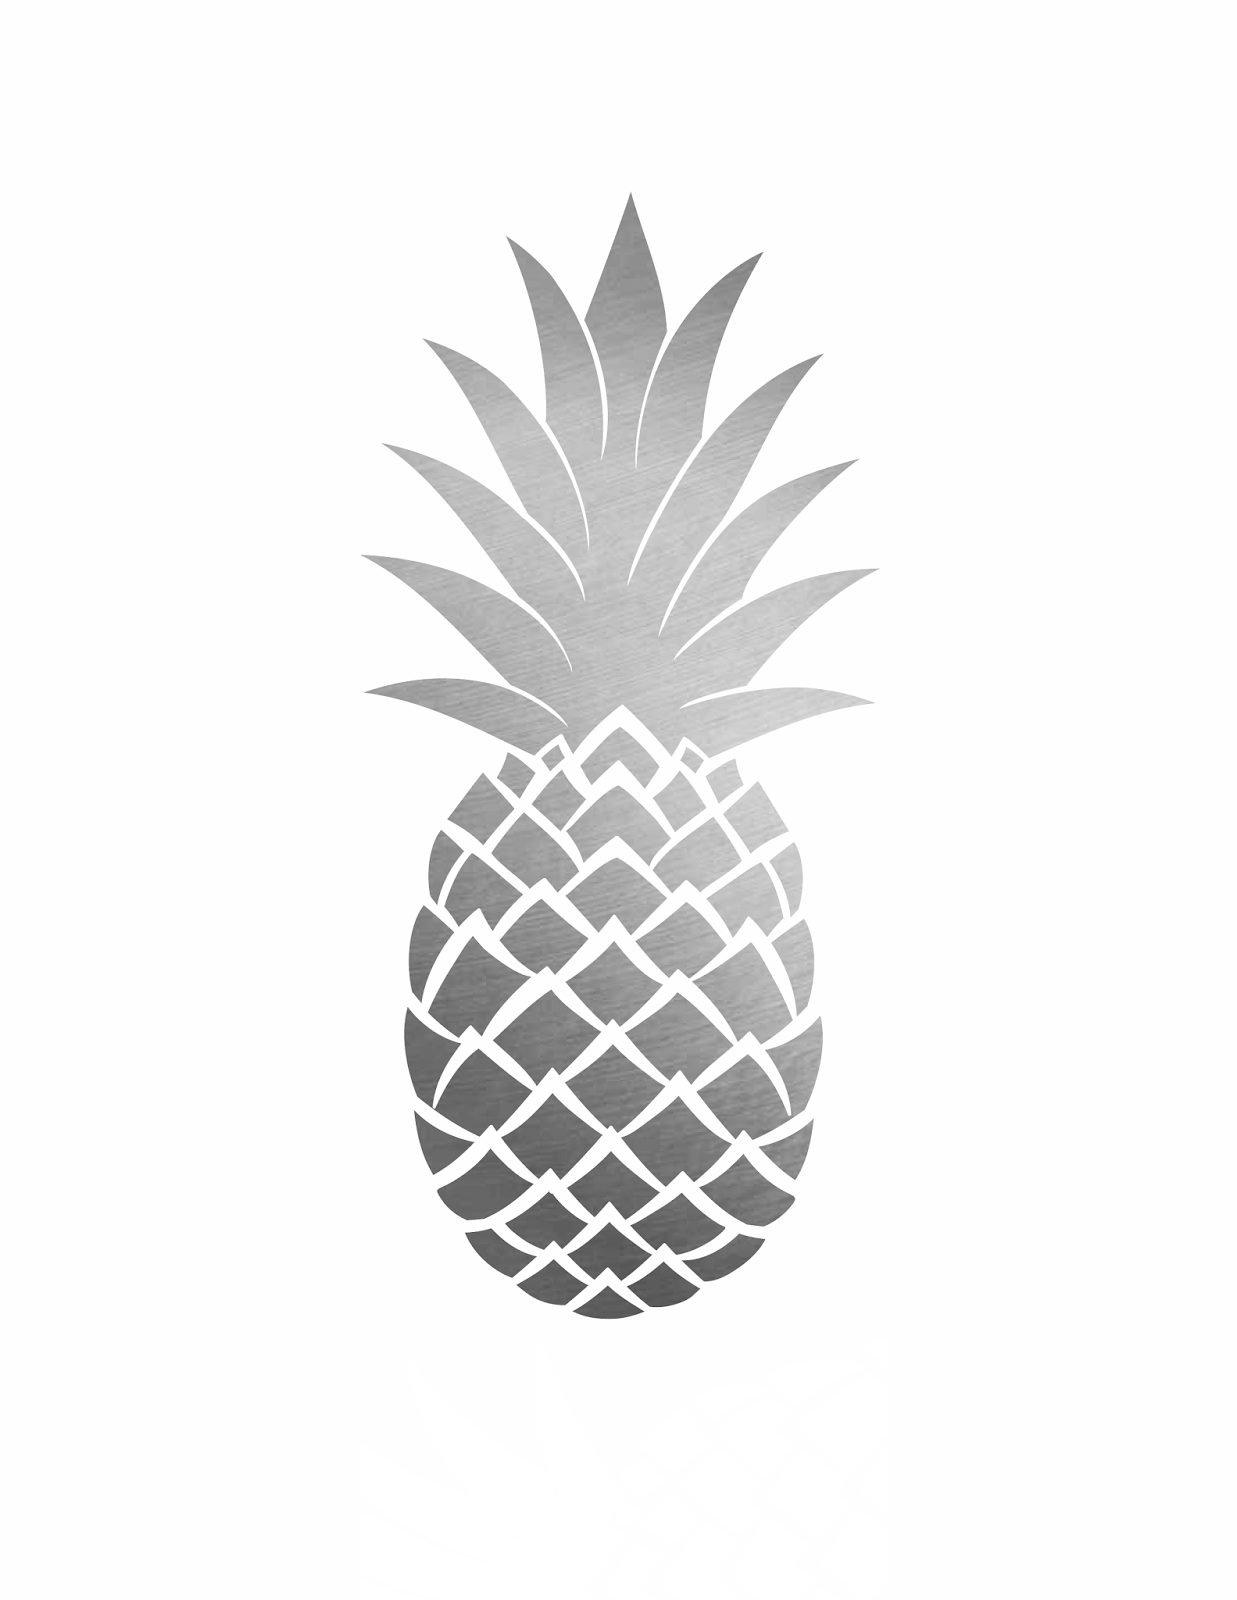 picture regarding Free Printable Pineapple called absolutely free pineapple printables increase some exciting toward your household decor!